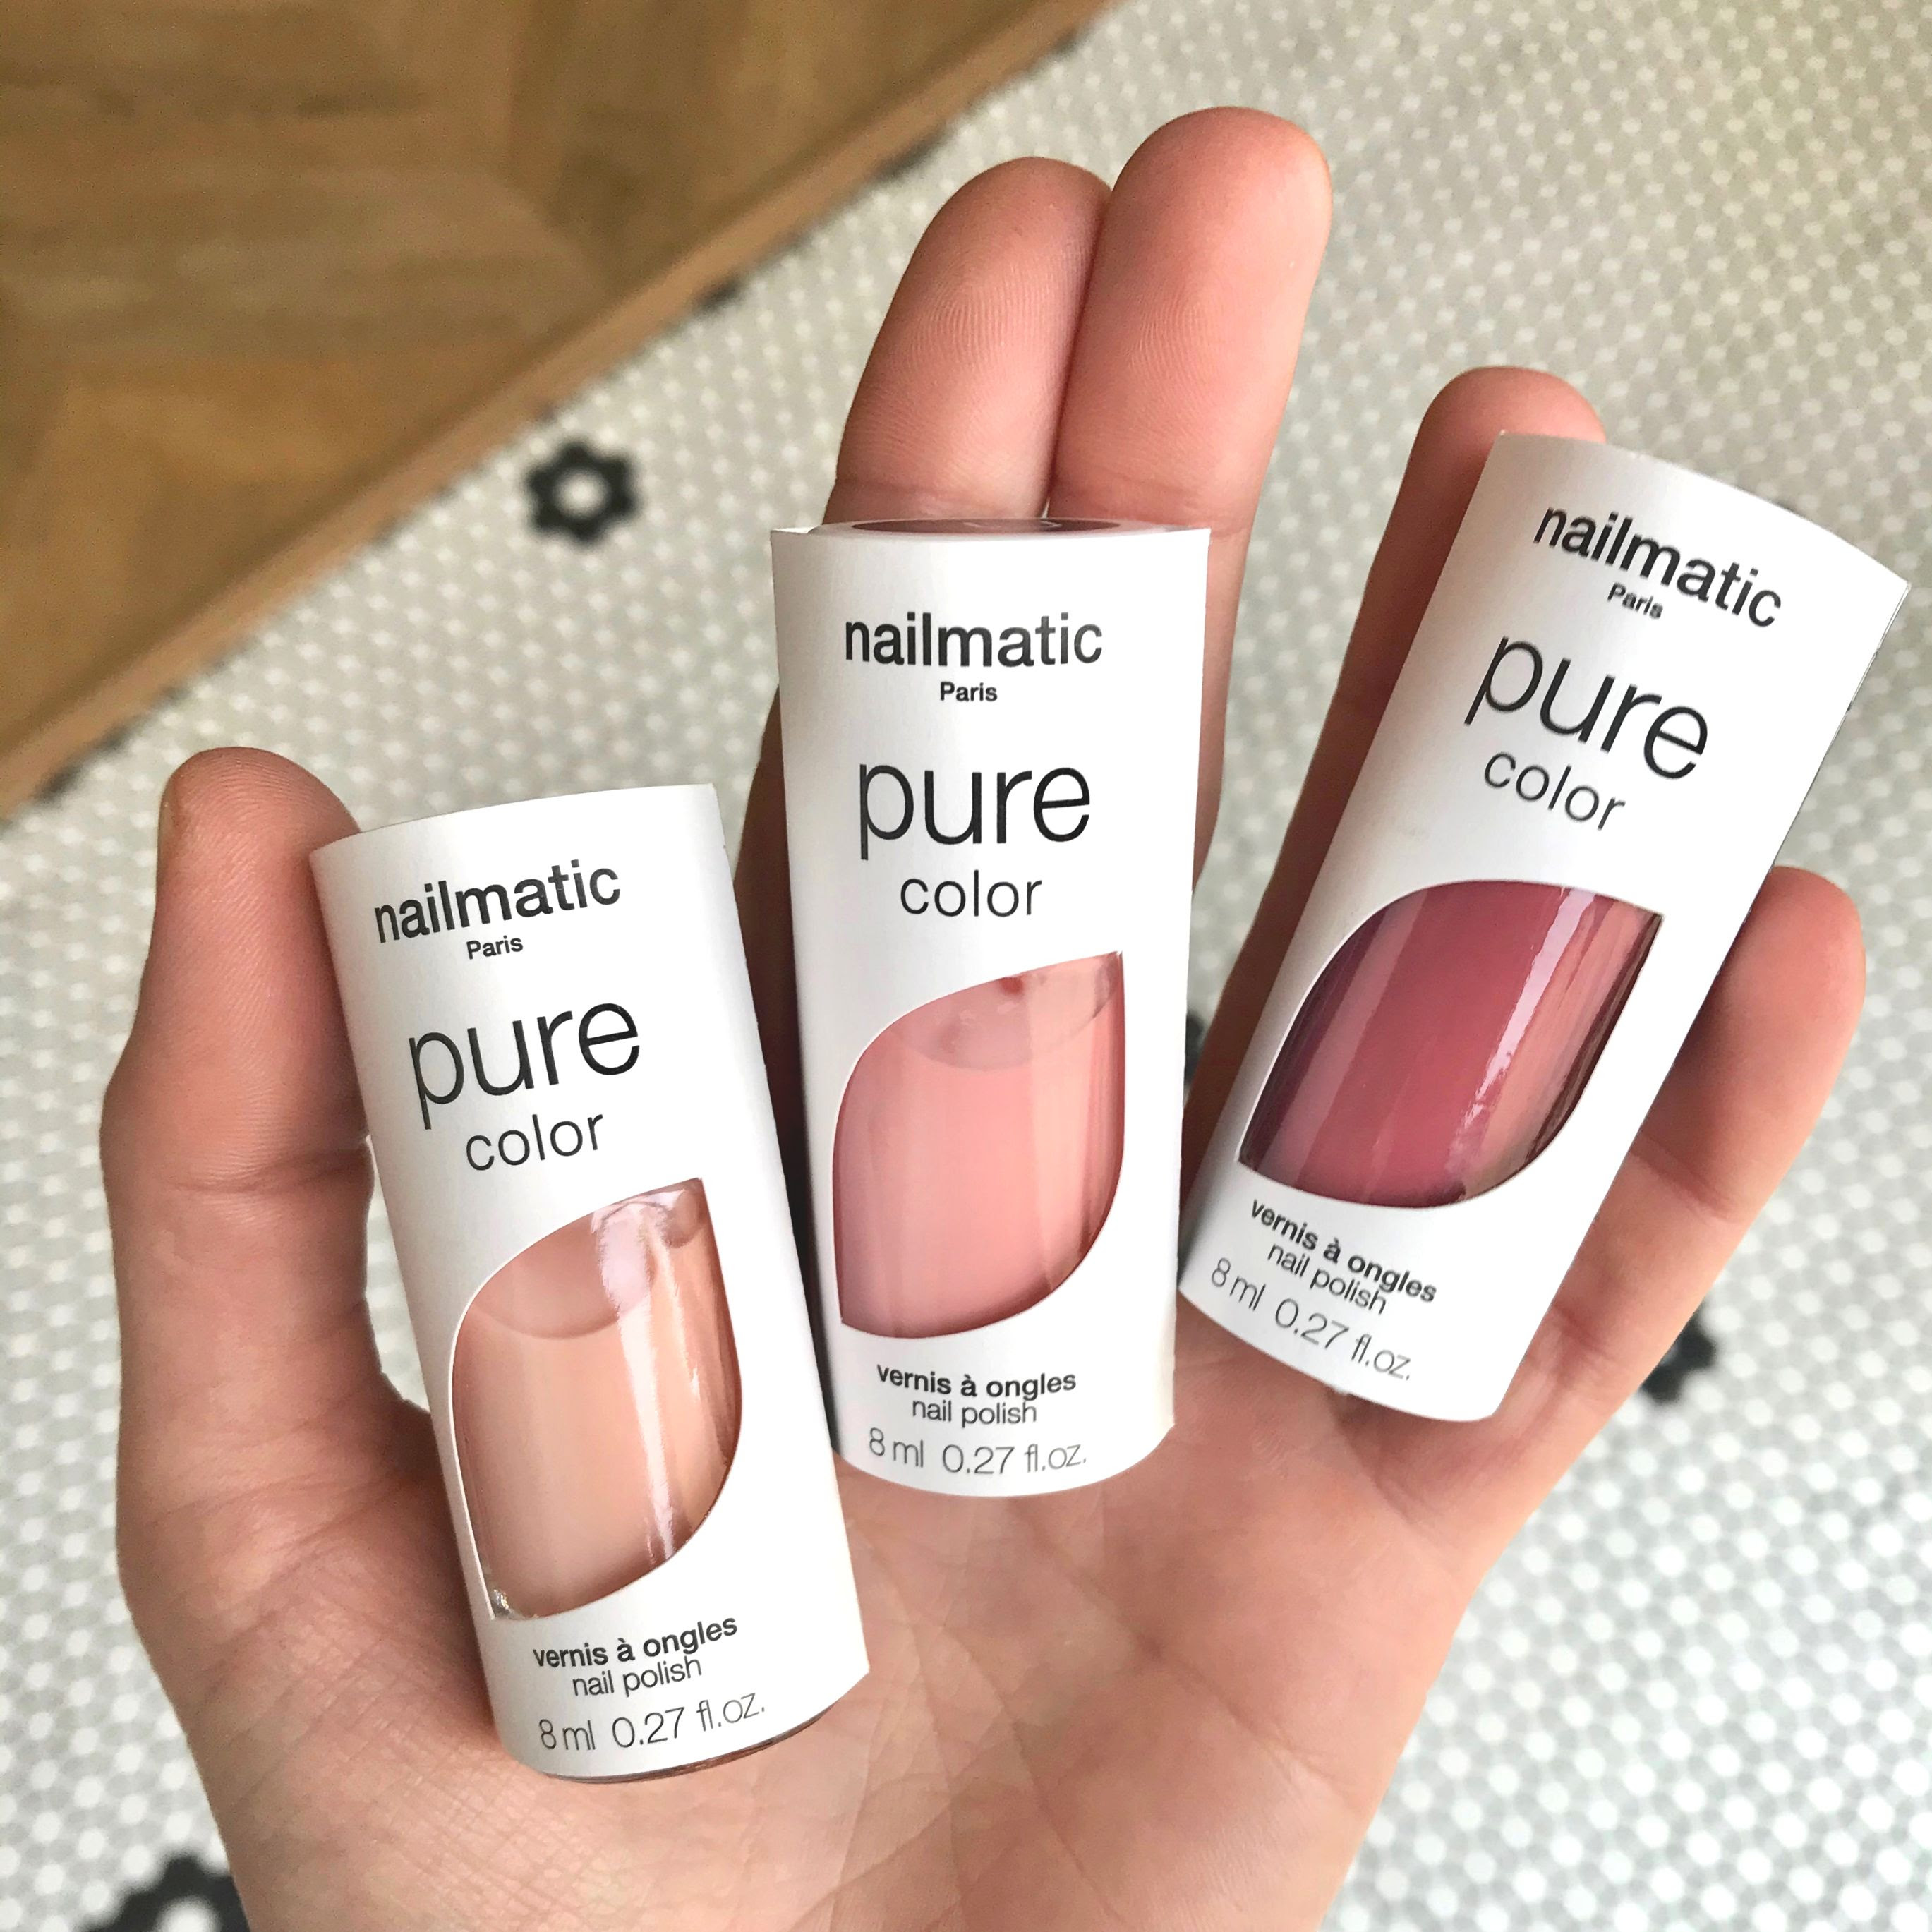 vernis à ongle nailmatic pure